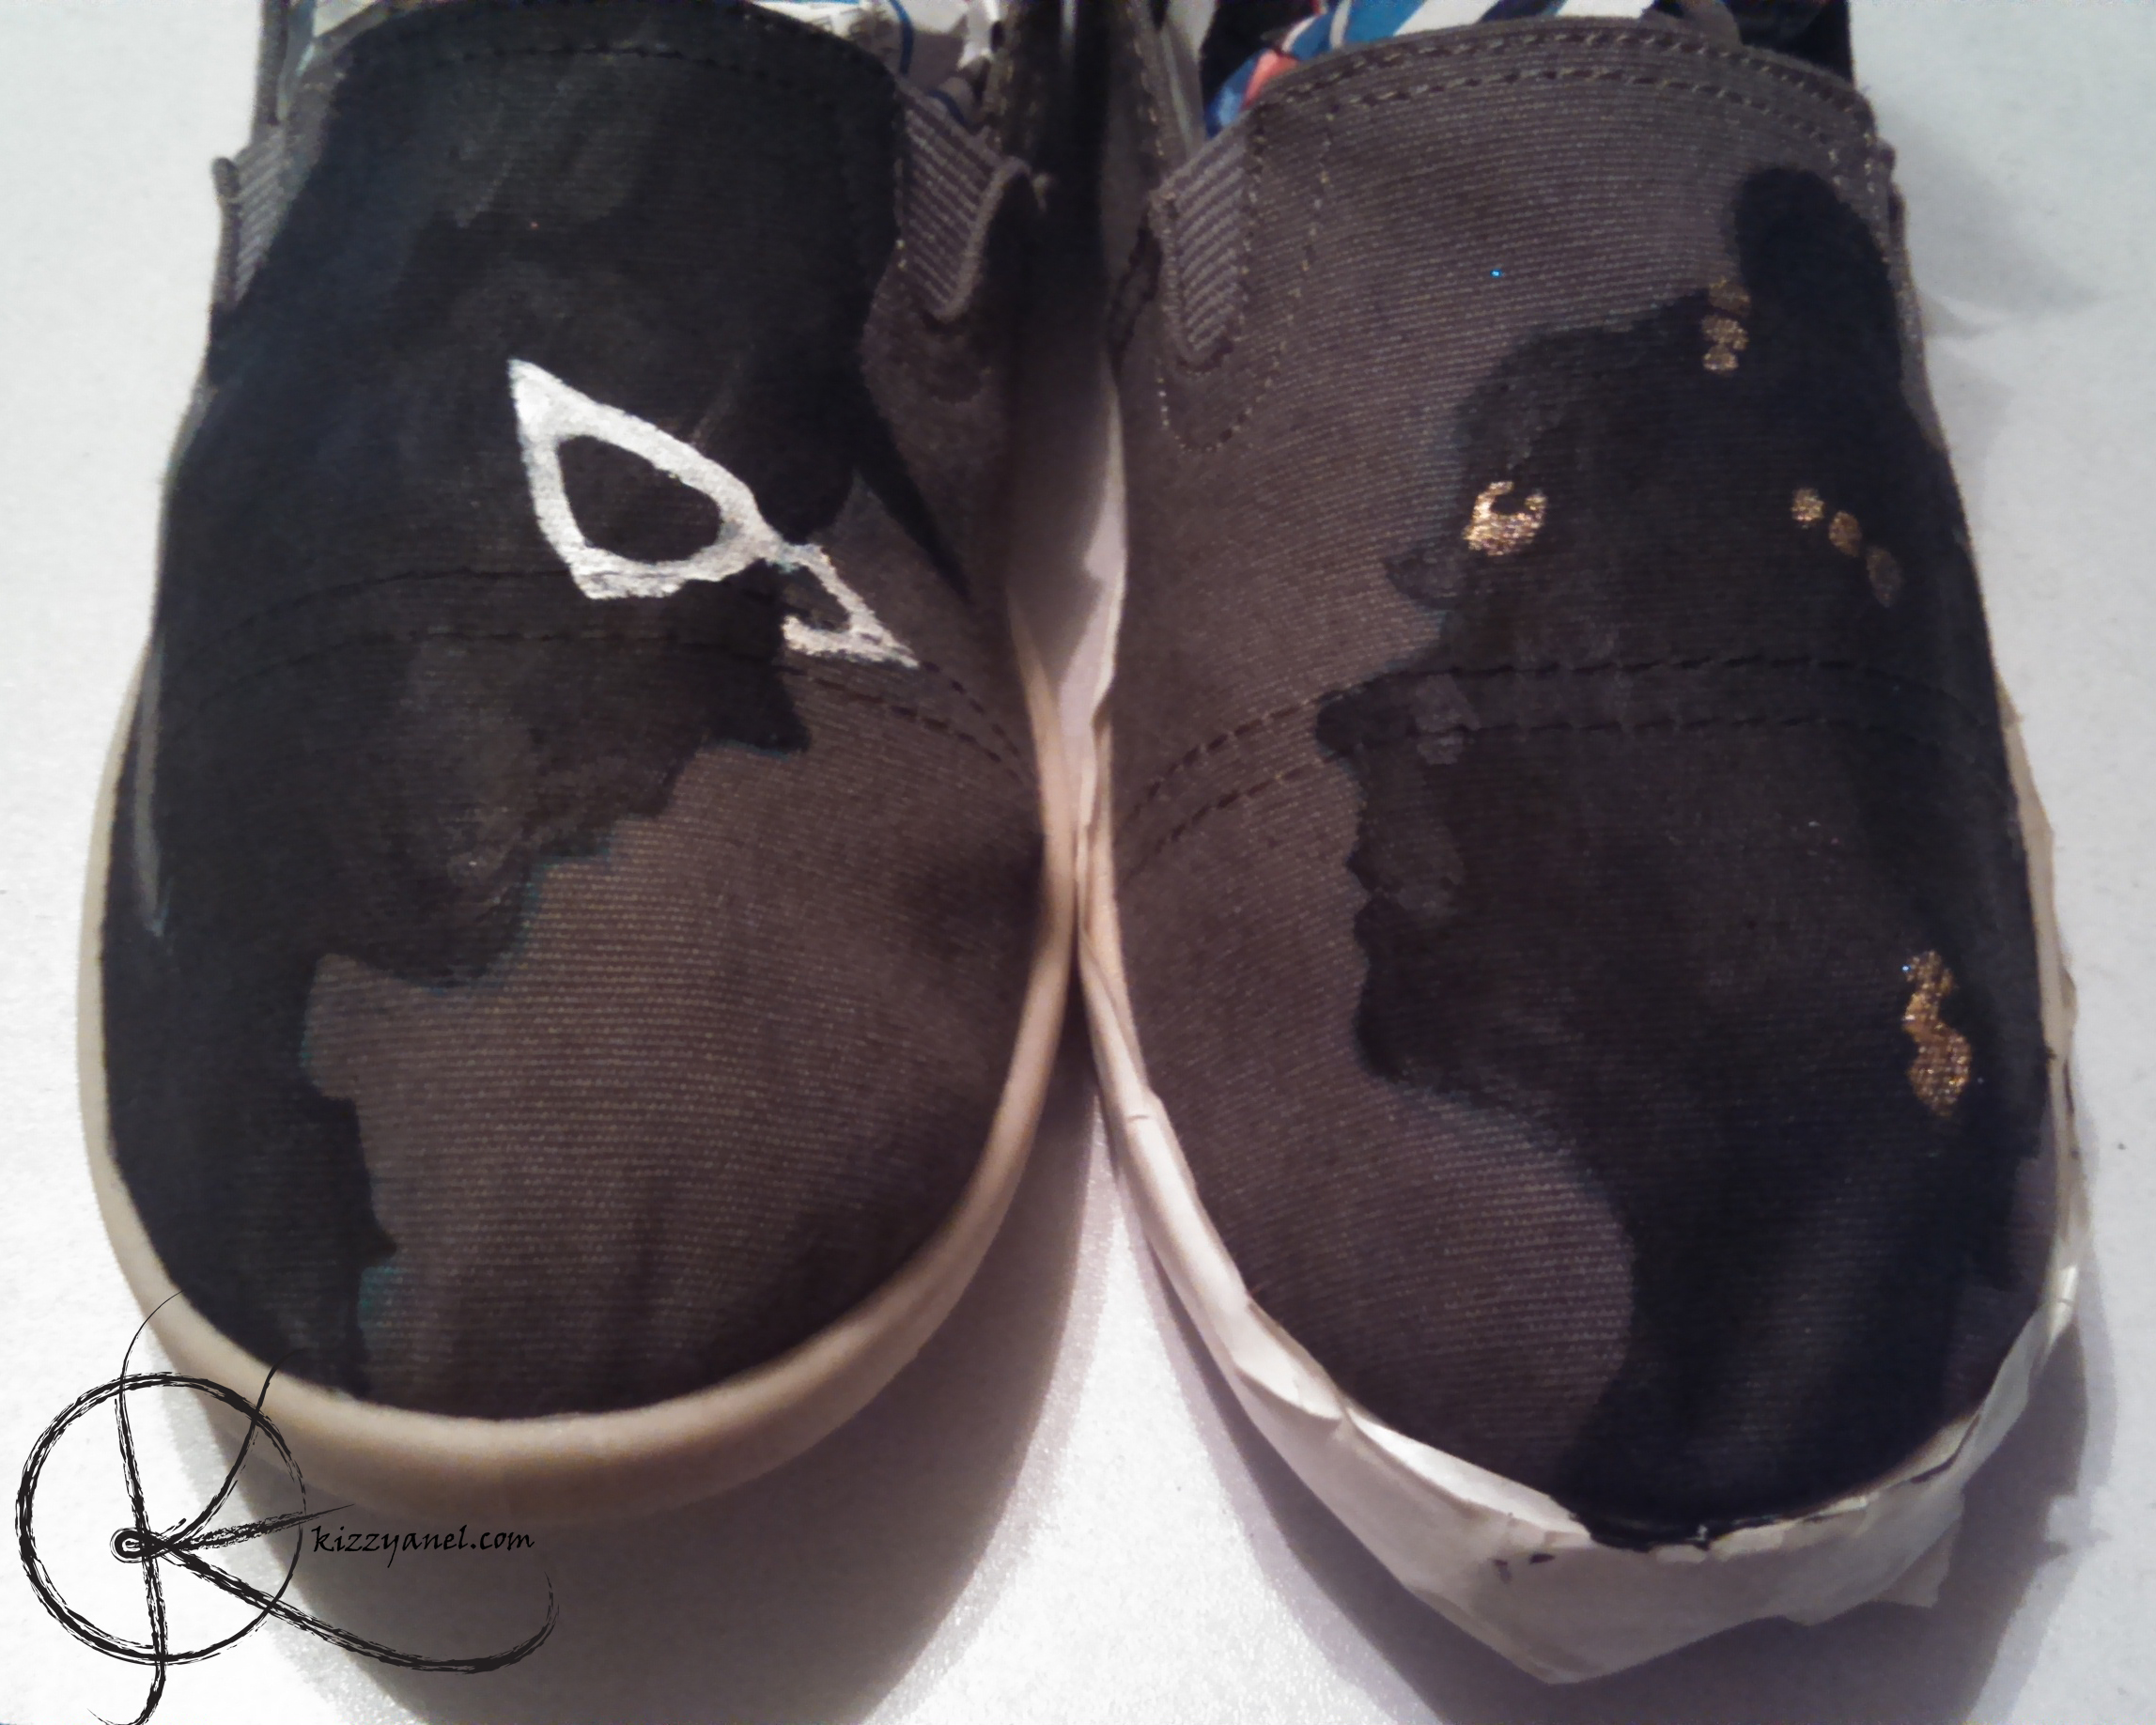 Serenity shoes front